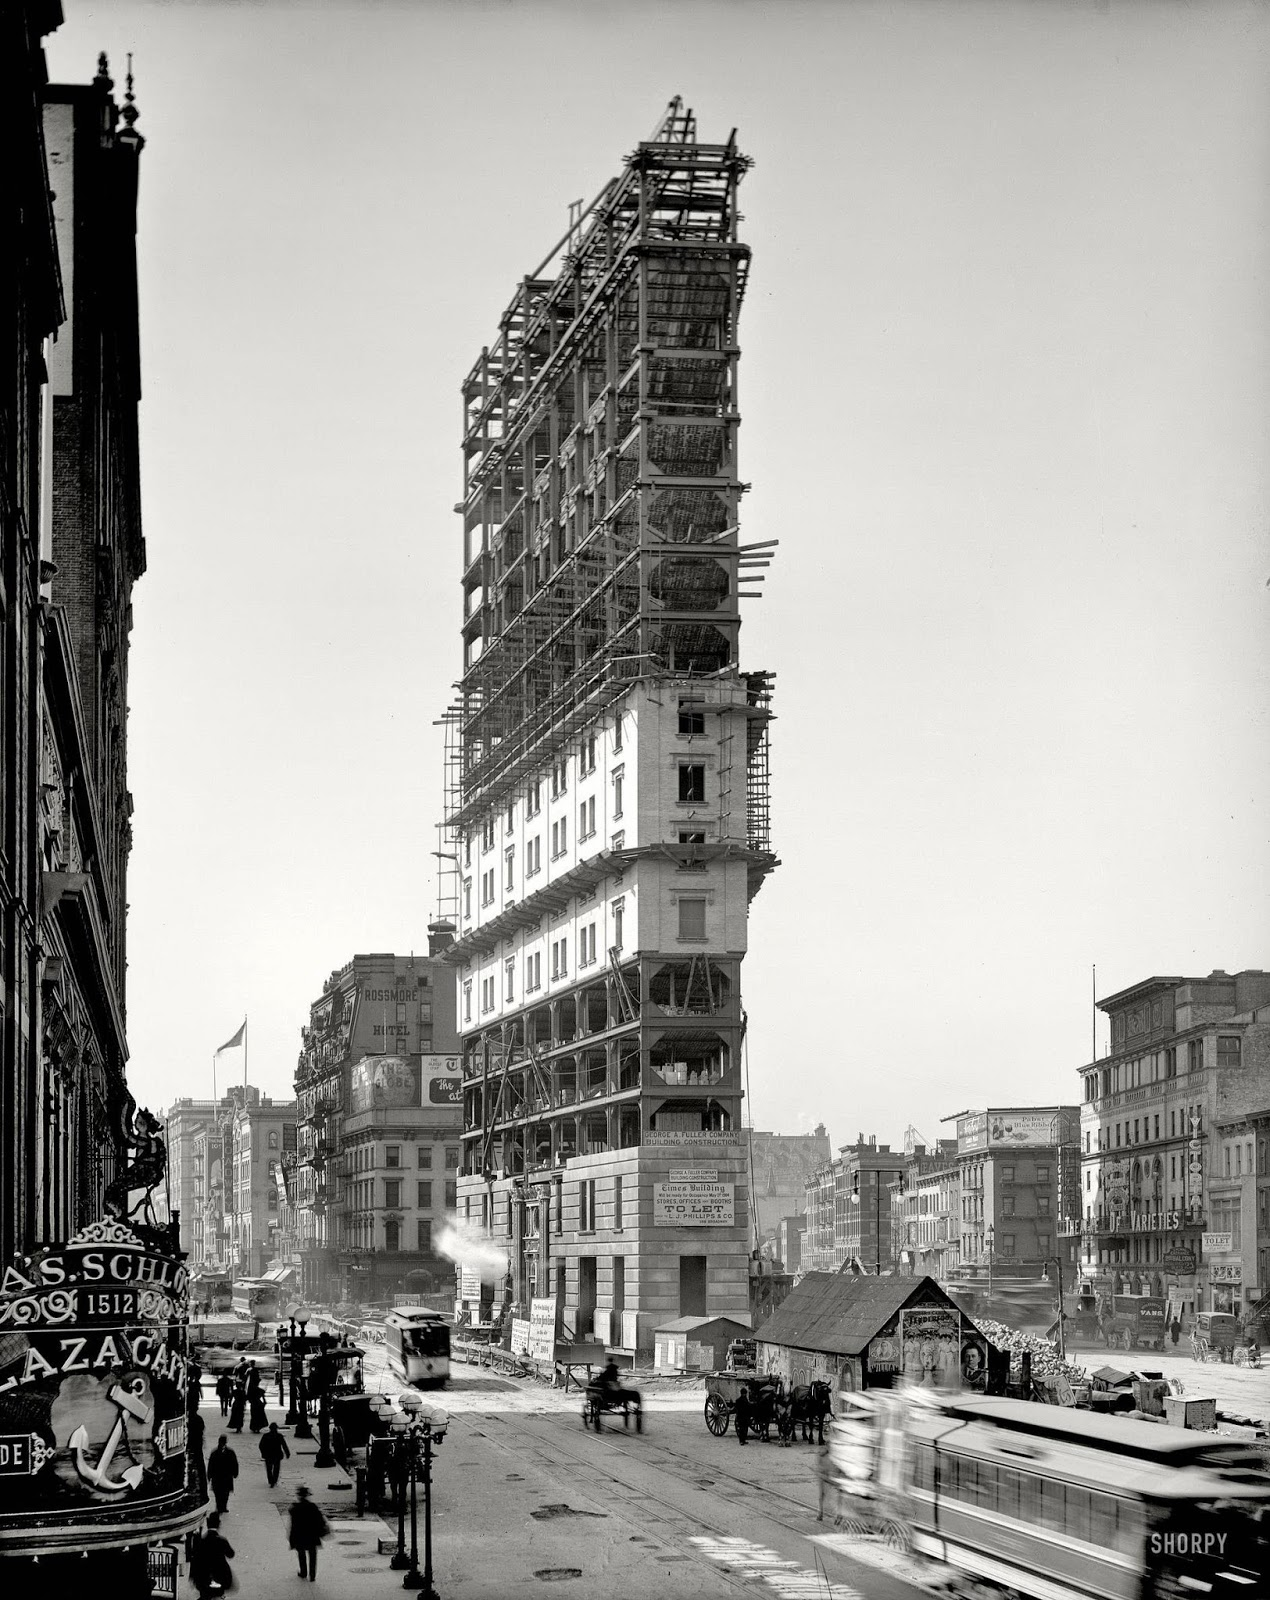 Patrick Willis Hd Wallpaper One Times Square Under Construction In 1903 Vintage Everyday